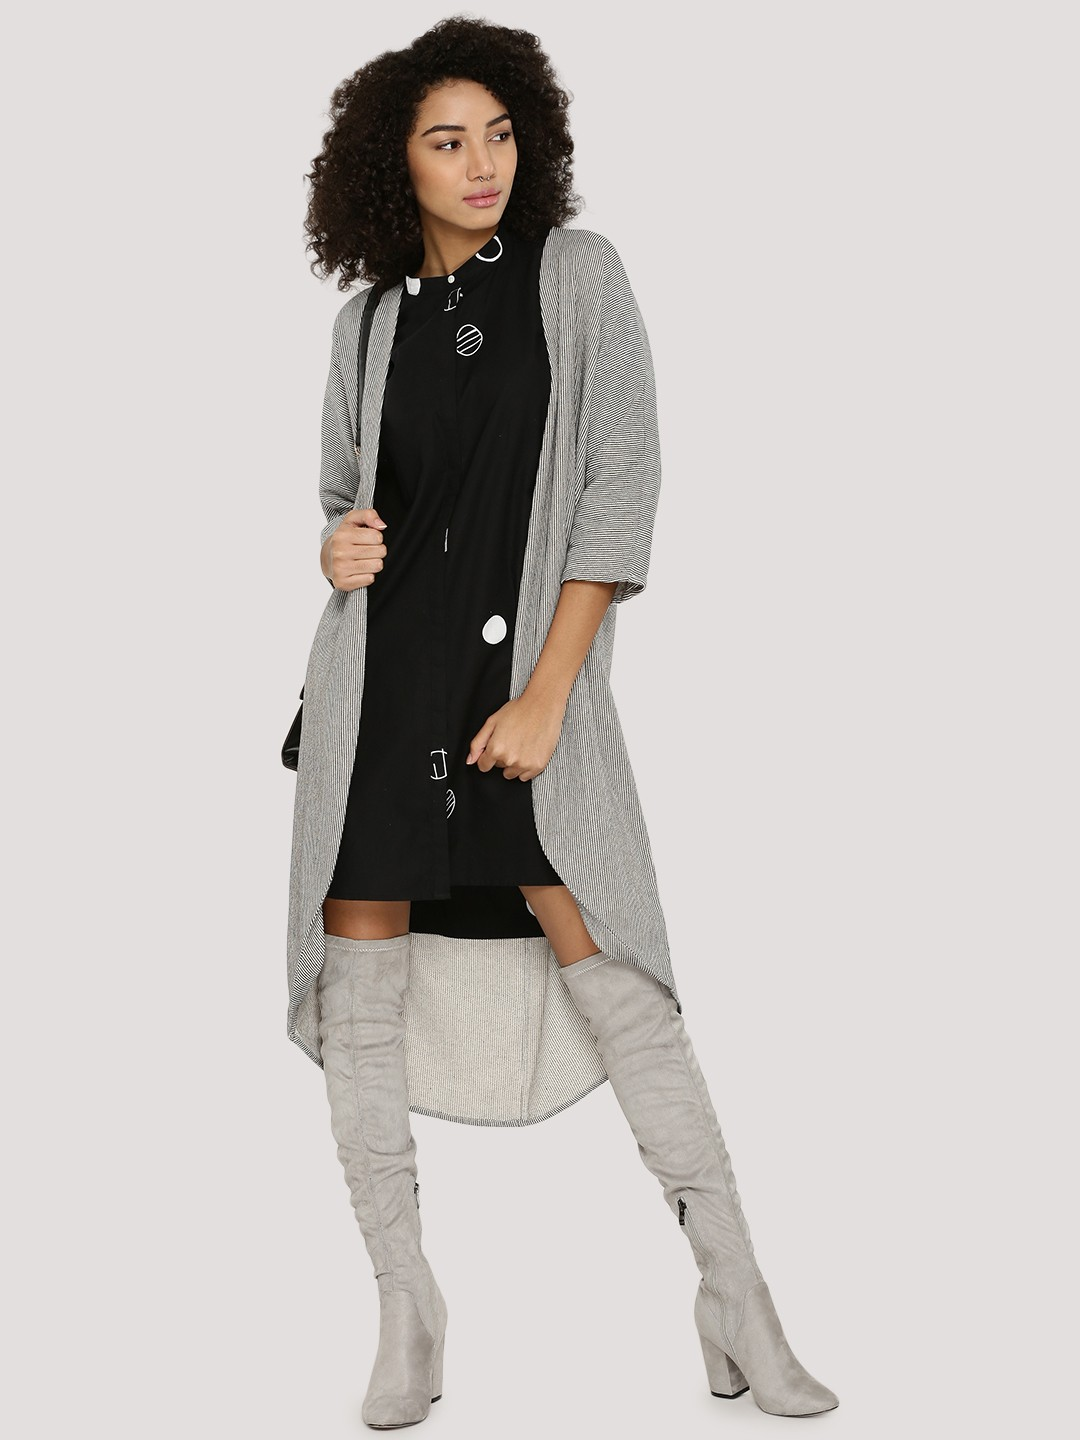 Add a layer with a cardigan from Old Navy. We have a variety of fabrics and colors to choose from to keep you warm and comfortable in all seasons. You'll also find different sleeve lengths, button-front, belted wrap, v-neck and satin trim cardigan styles. A cardigan .